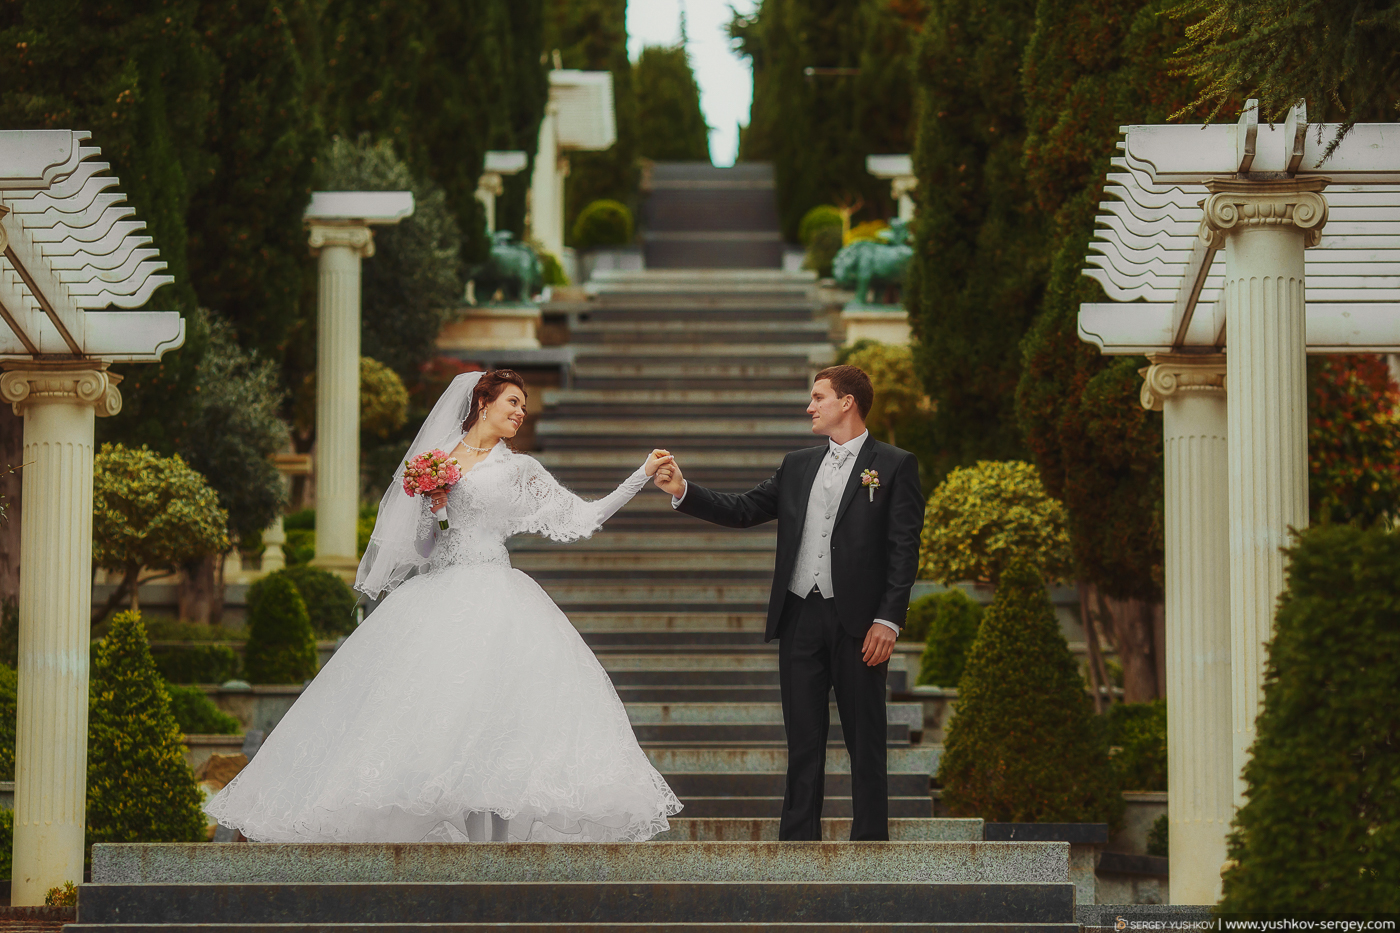 Wedding photo for two in Crimea. Natasha and Eugene